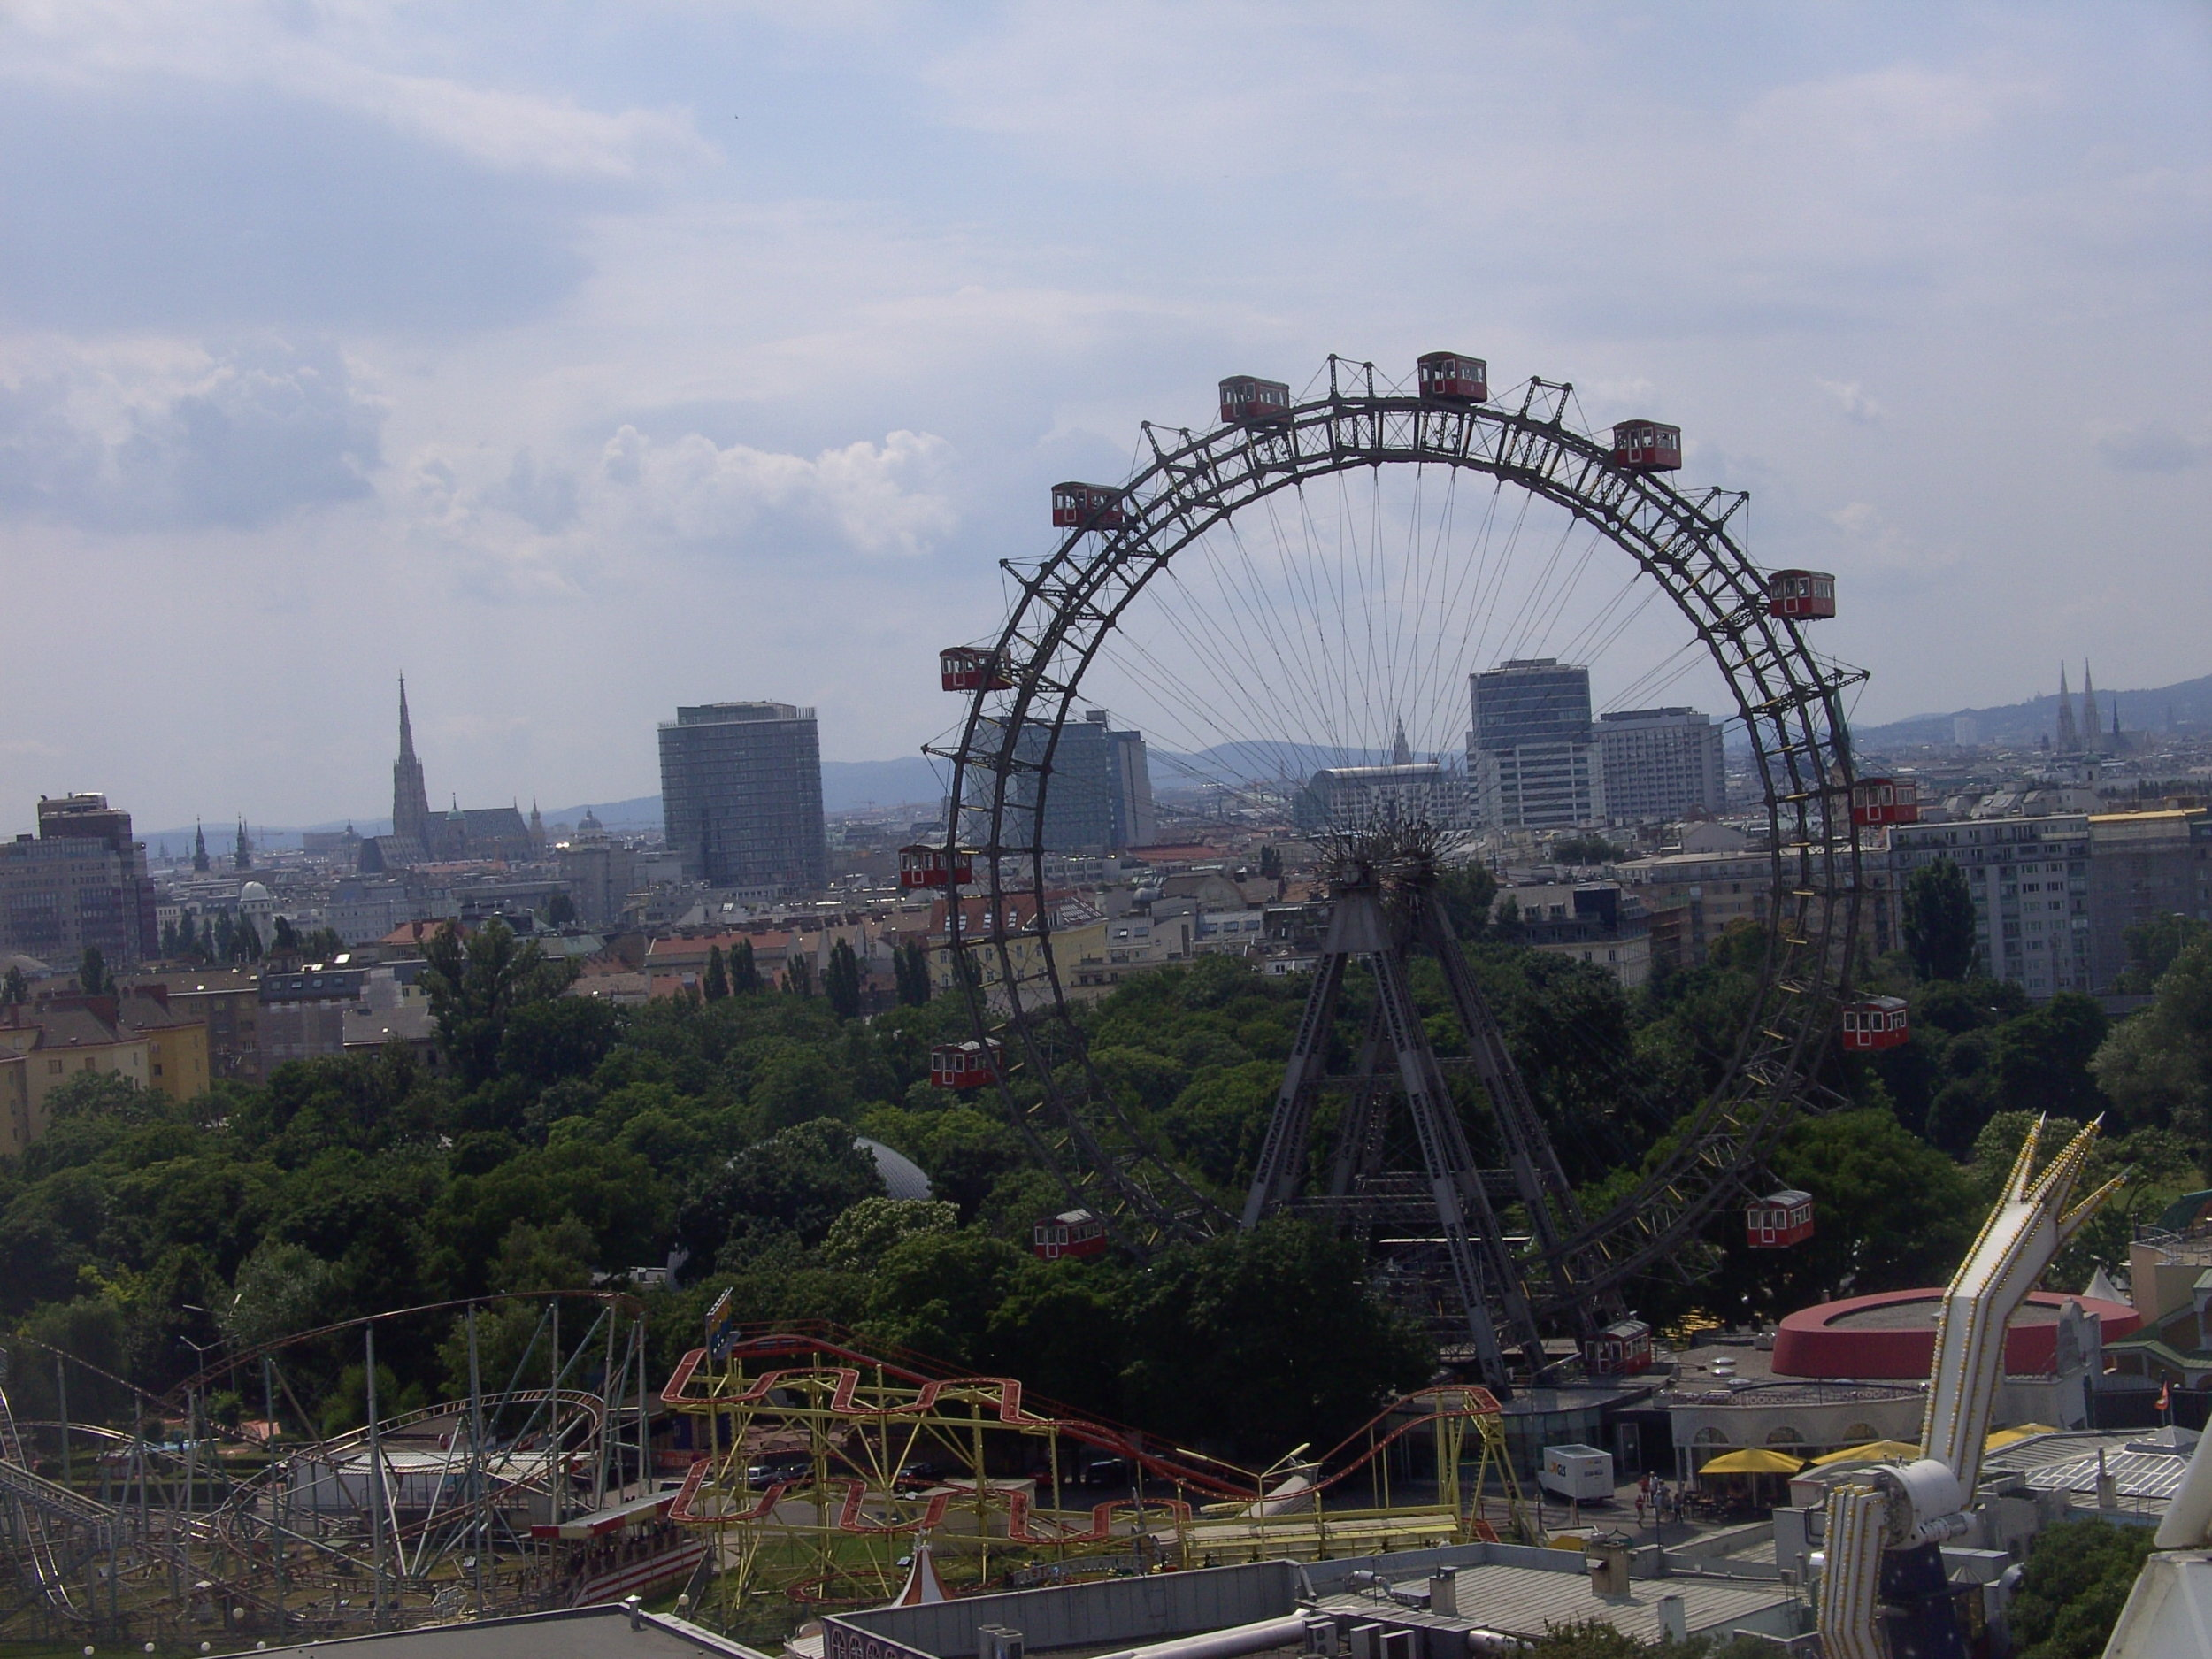 This is the famous Ferris Wheel - as seen from the other one ;)